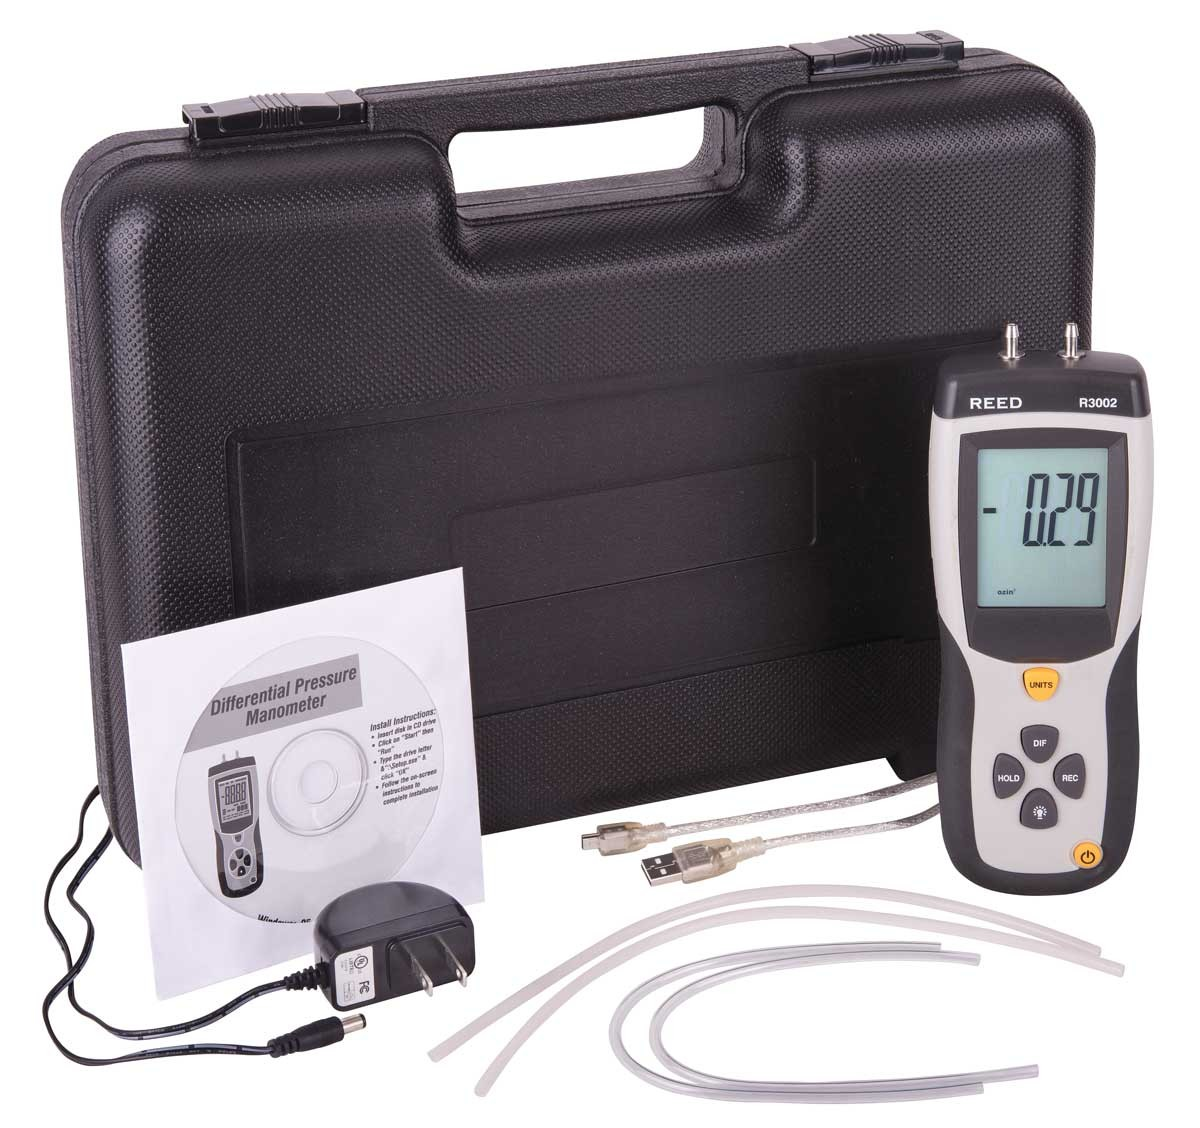 REED R3002 Digital Differential Pressure Manometer (5psi)-Included